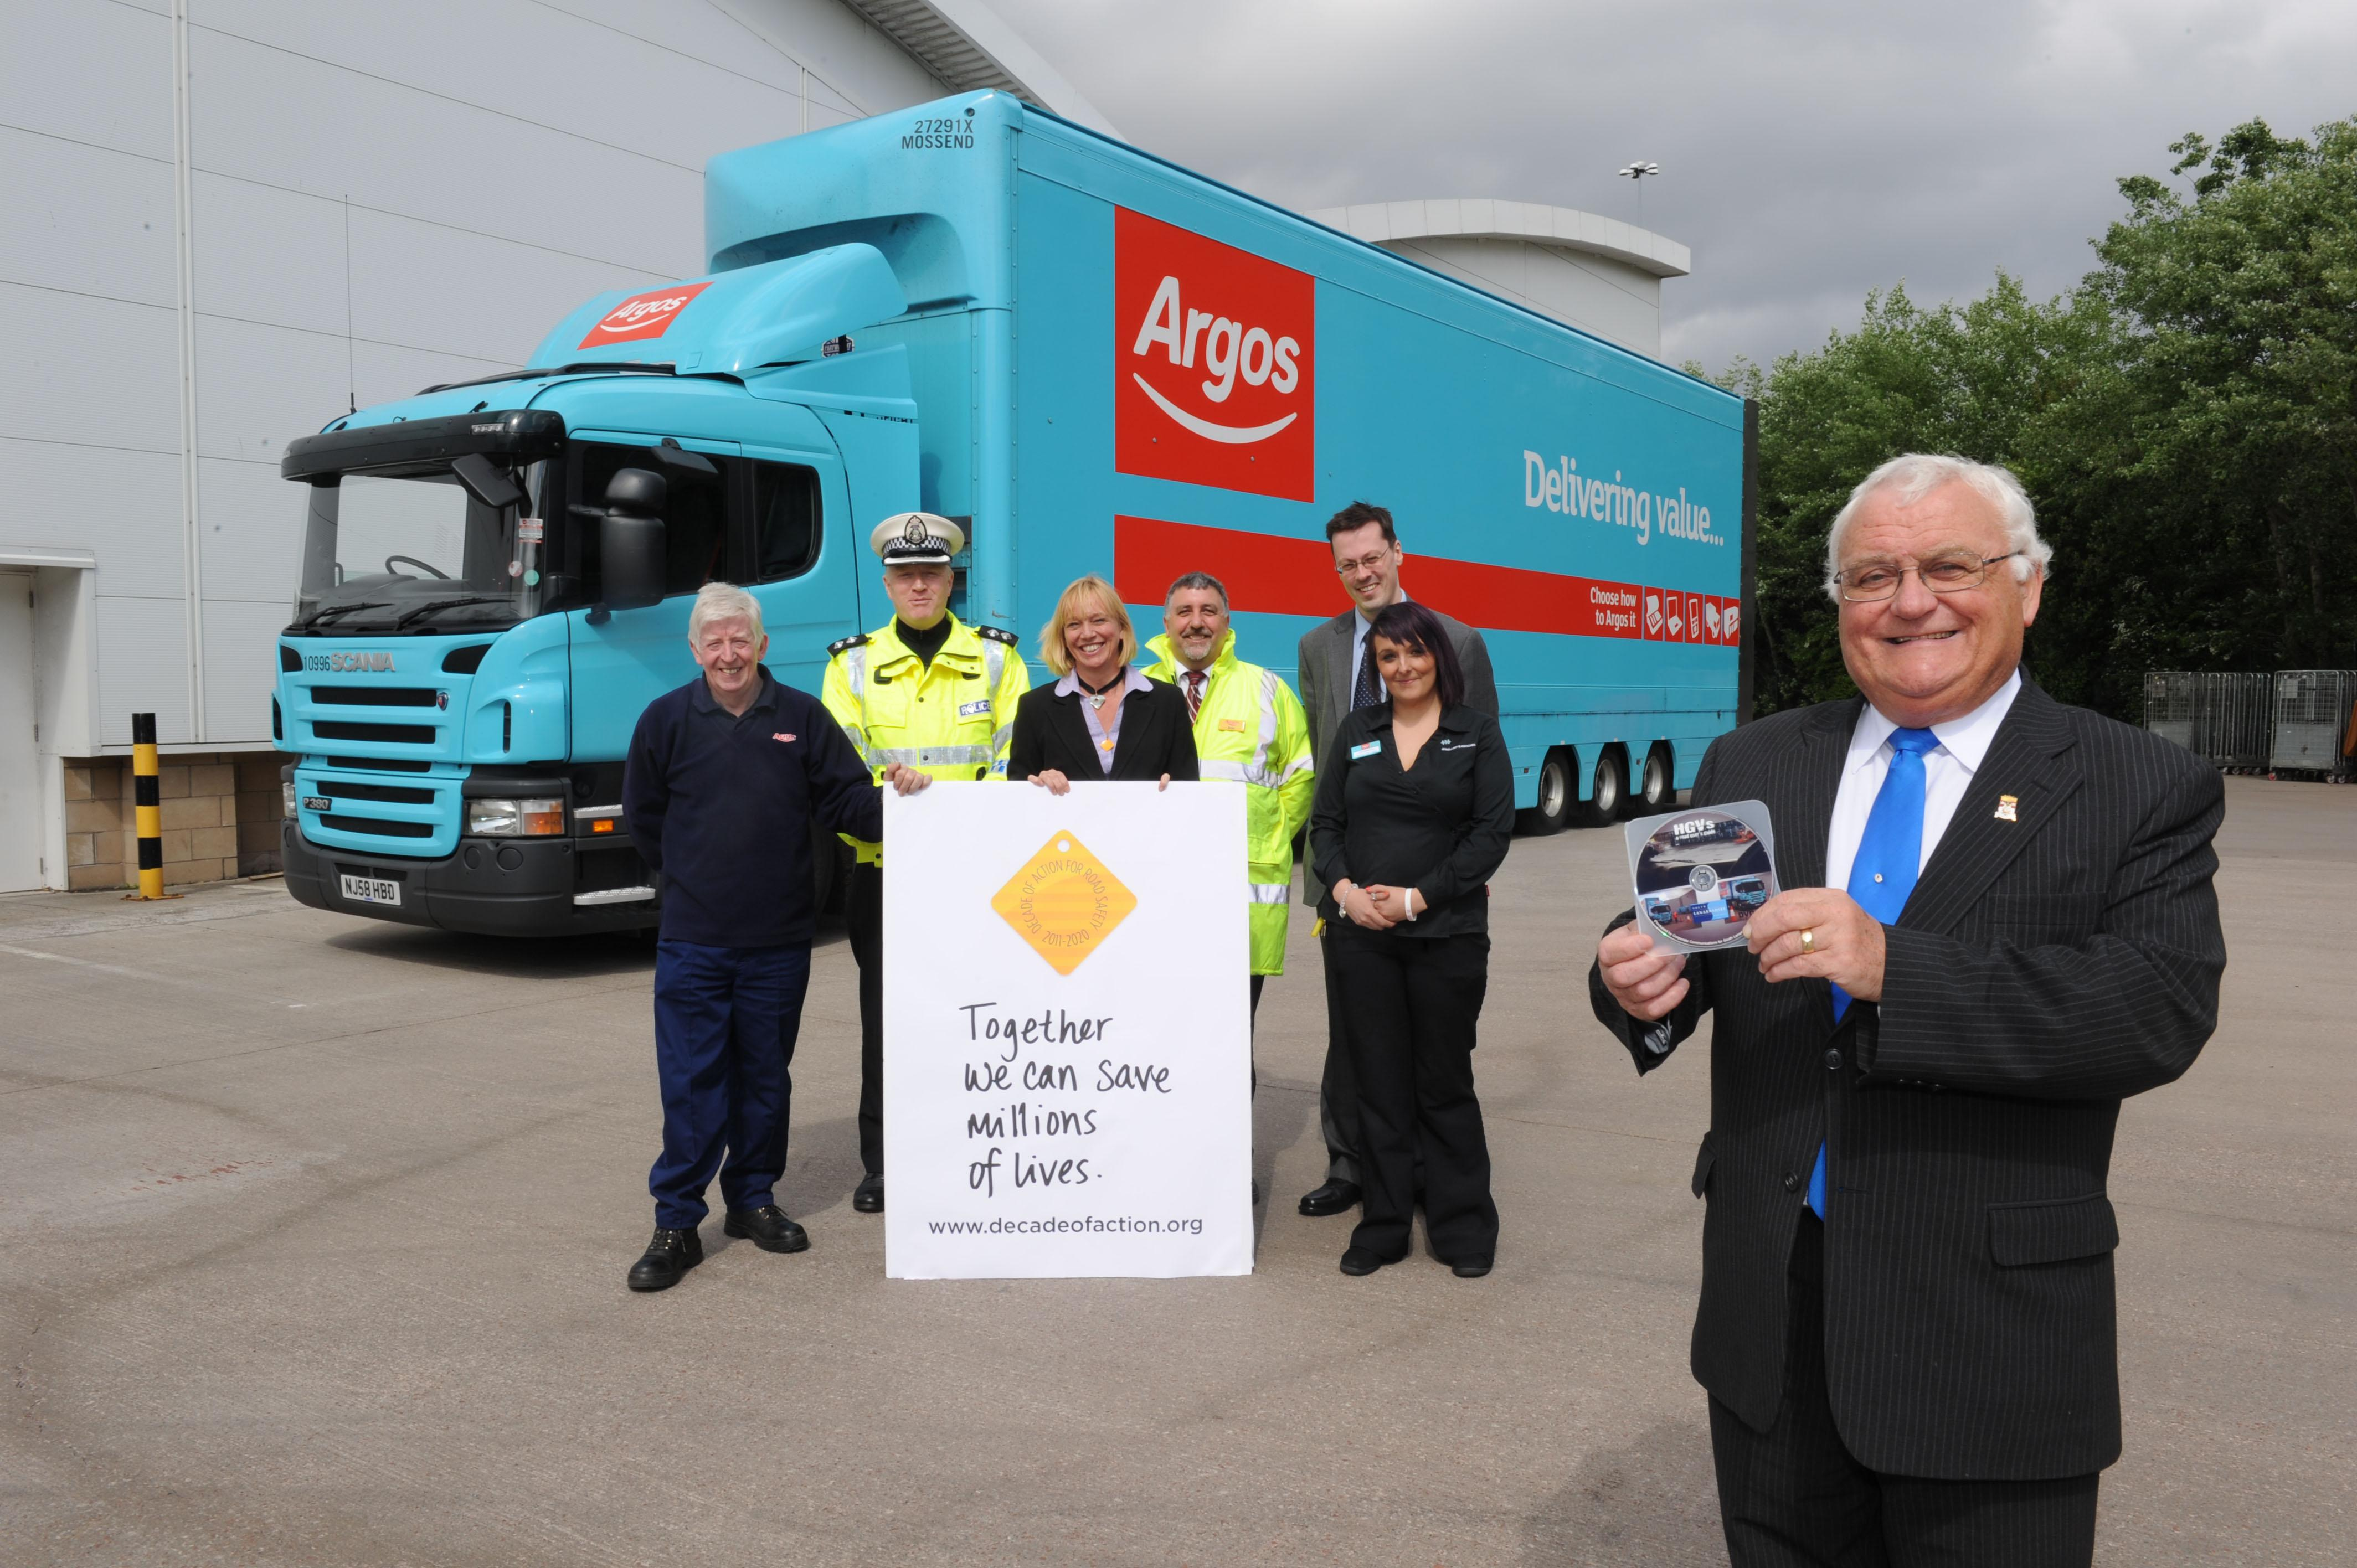 Norrie Perry, Driver, Norbert Dentressangle, Inspector Keith Prentice, Strathclyde Police, Eleanor Gibson, Road Safety Training Officer, South Lanarkshire Council, Murray Carle, Store Manager, Argos, Christiana Miller, Team Leader, Argos, Brian Gallacher,